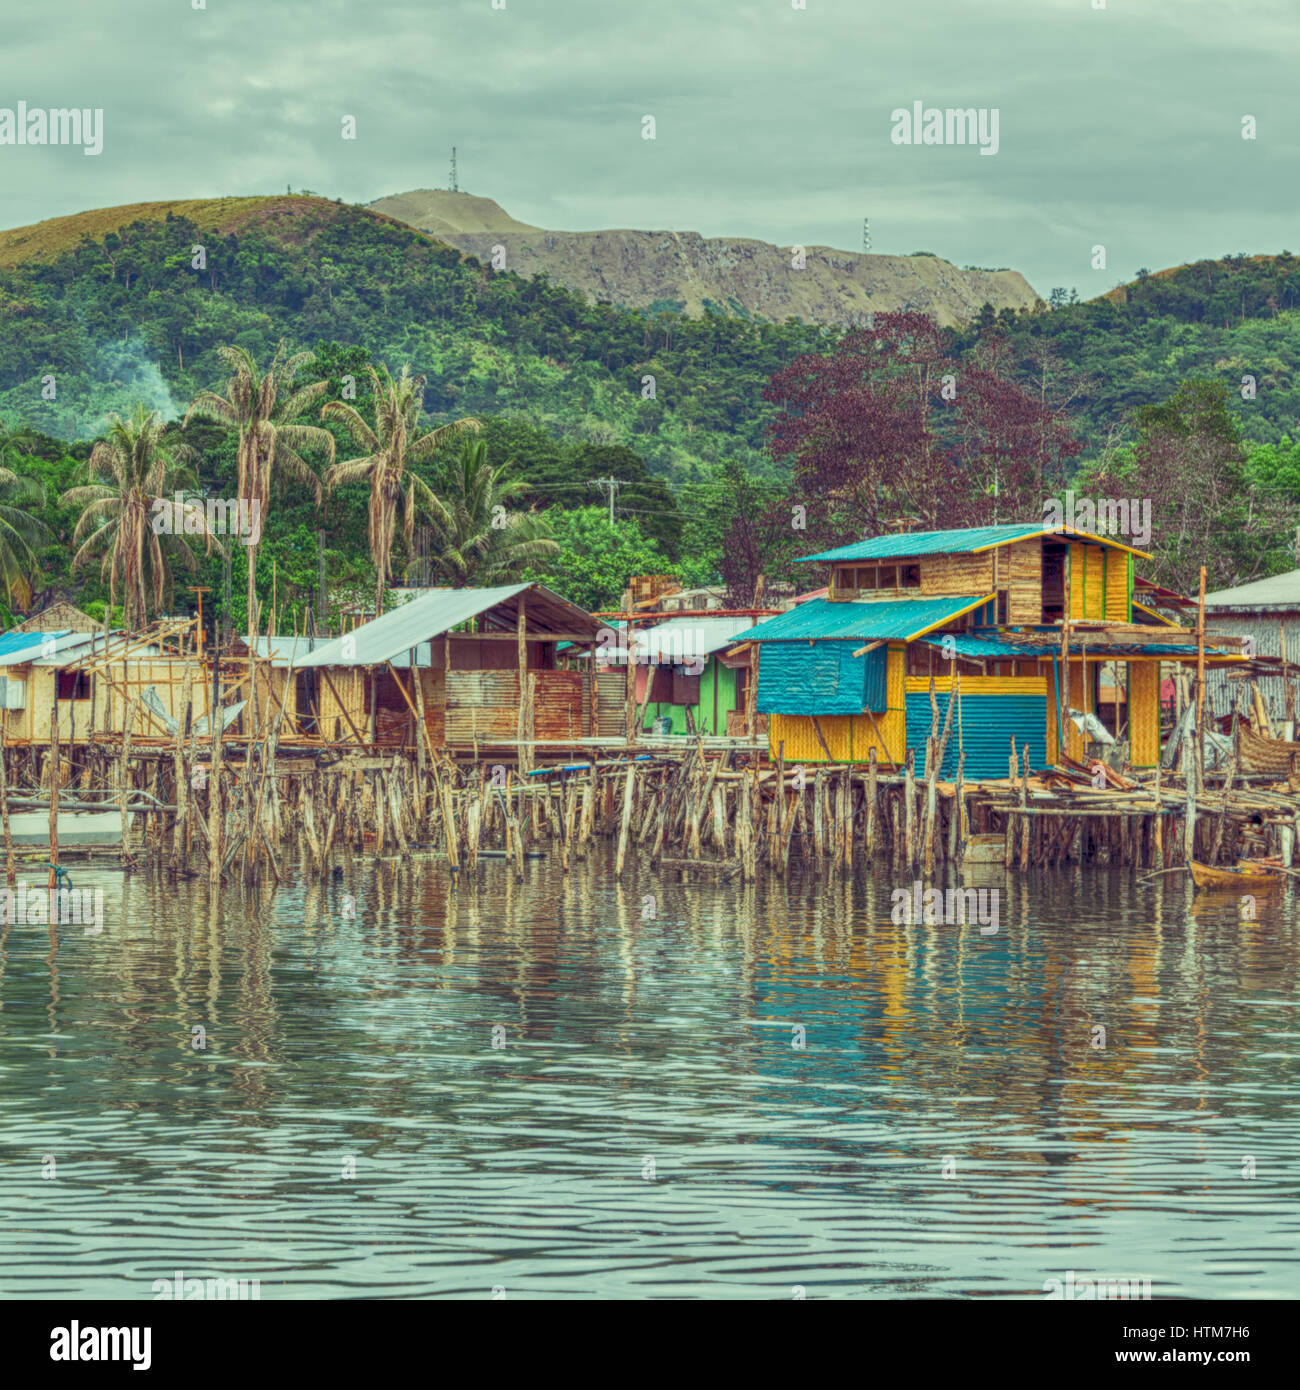 philippines house in the  slum for poor people concept of poverty and degradations - Stock Image